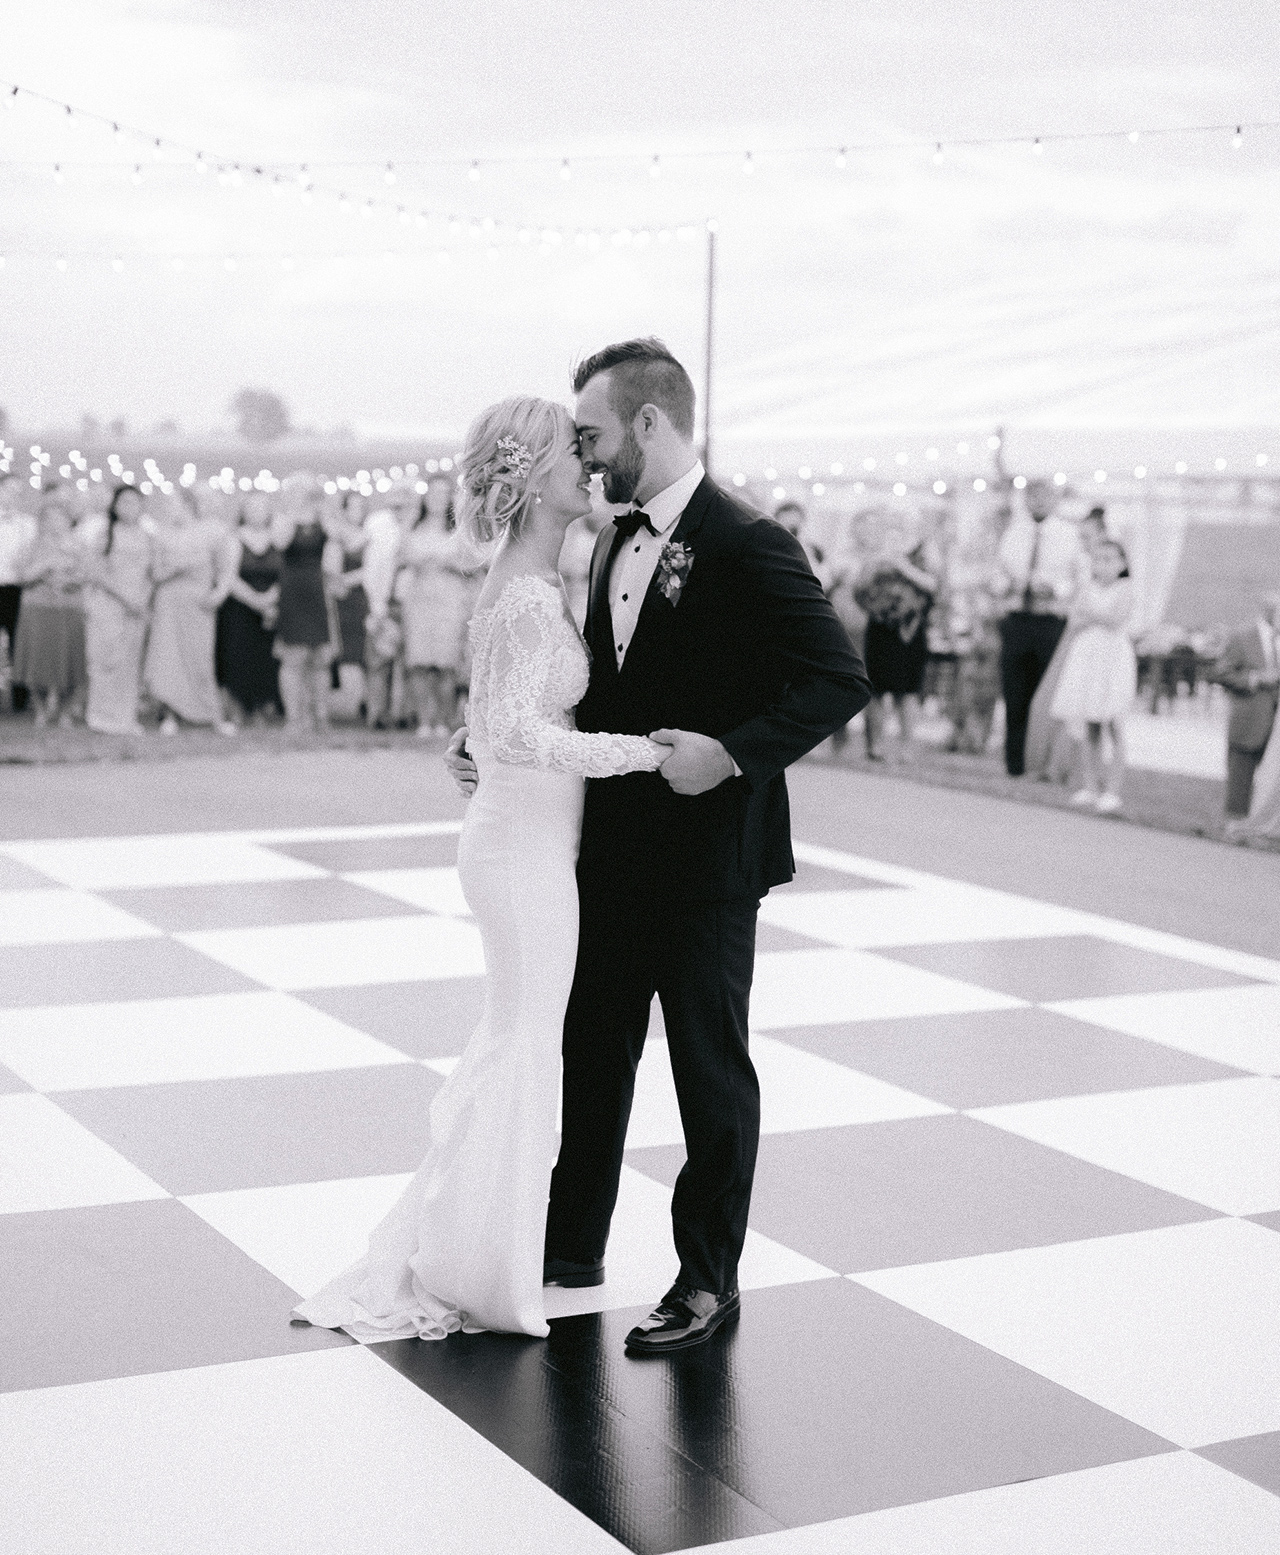 bride groom first dance checkered floor outdoors